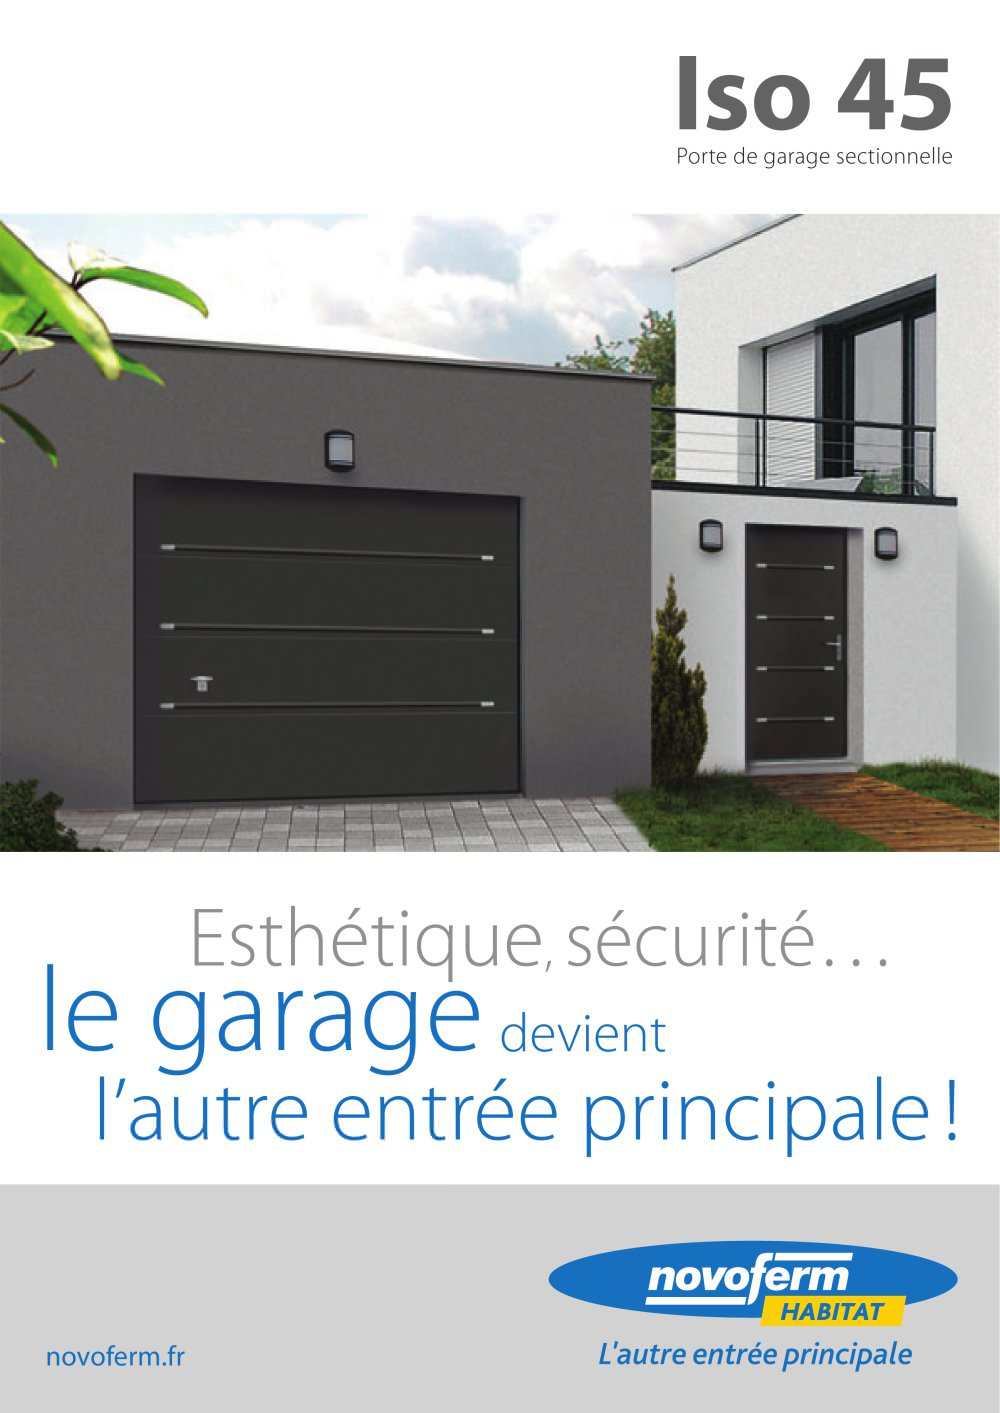 Iso Porte De Garage Sectionnelle NOVOFERM INDUSTRIE Catalogue - Porte de garage sectionnelle avec poignee porte pvc